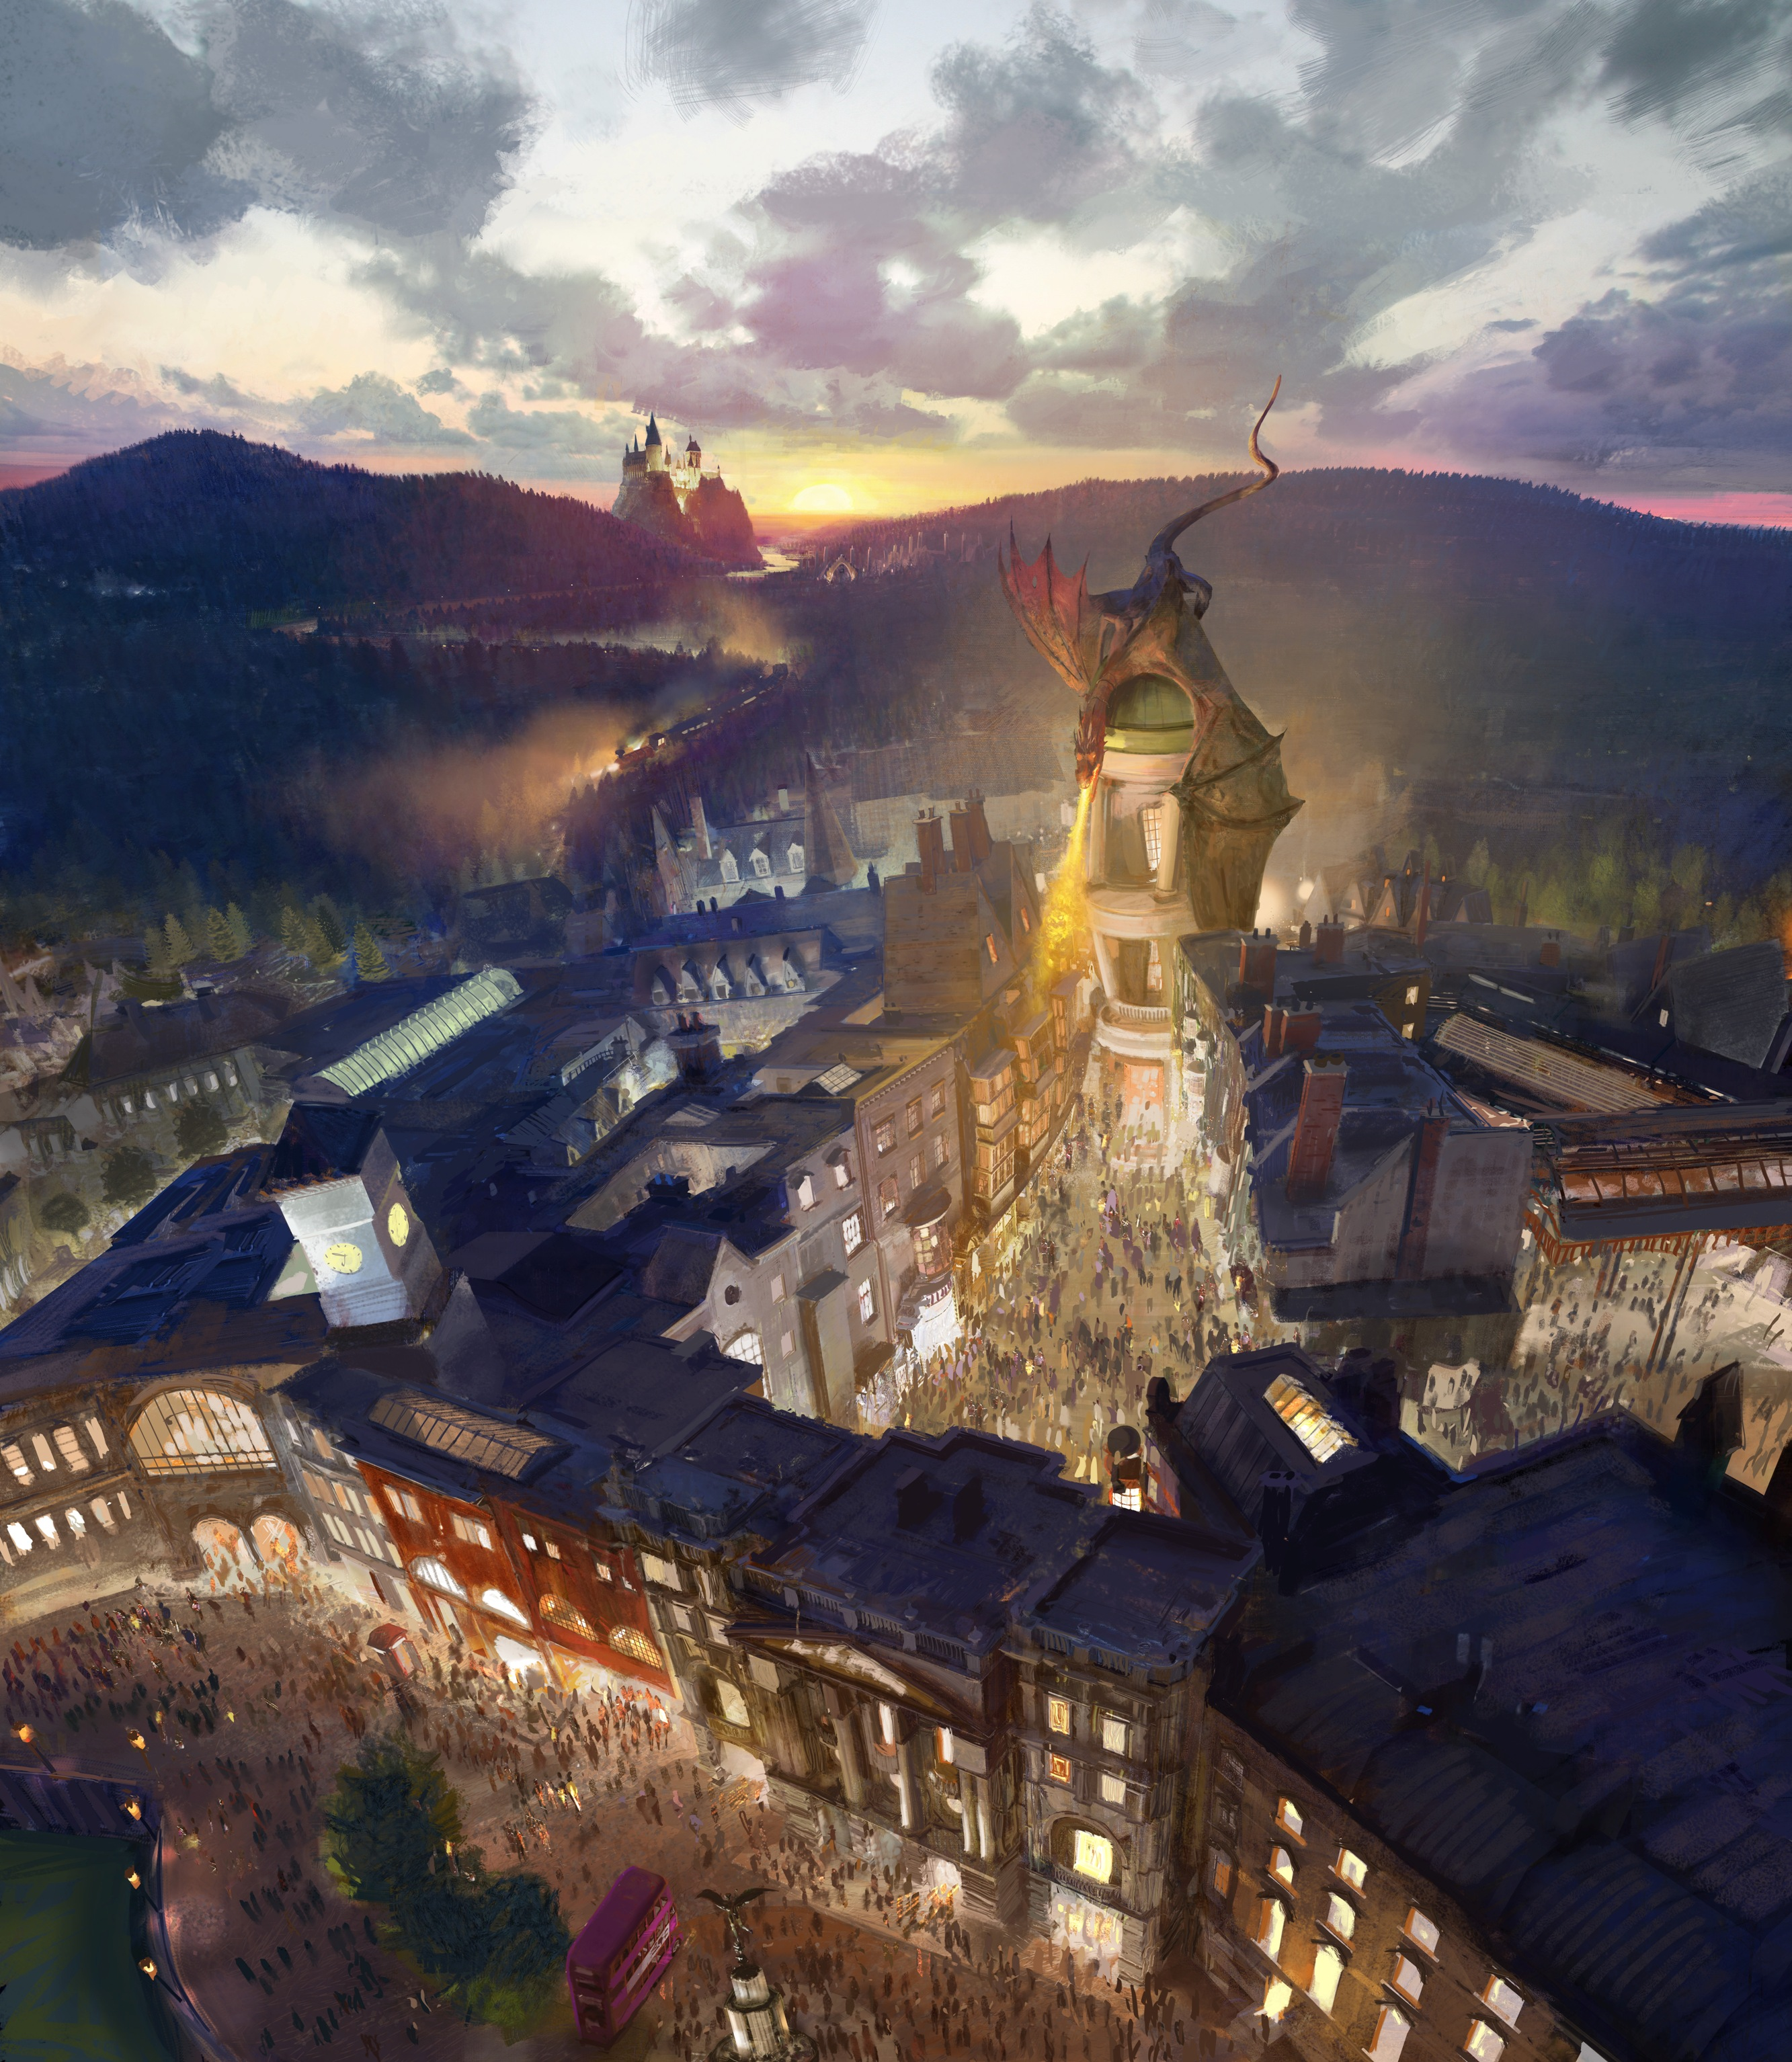 -resources-digitalassets-The Wizarding World of Harry Potter - Diagon Alley Rendering